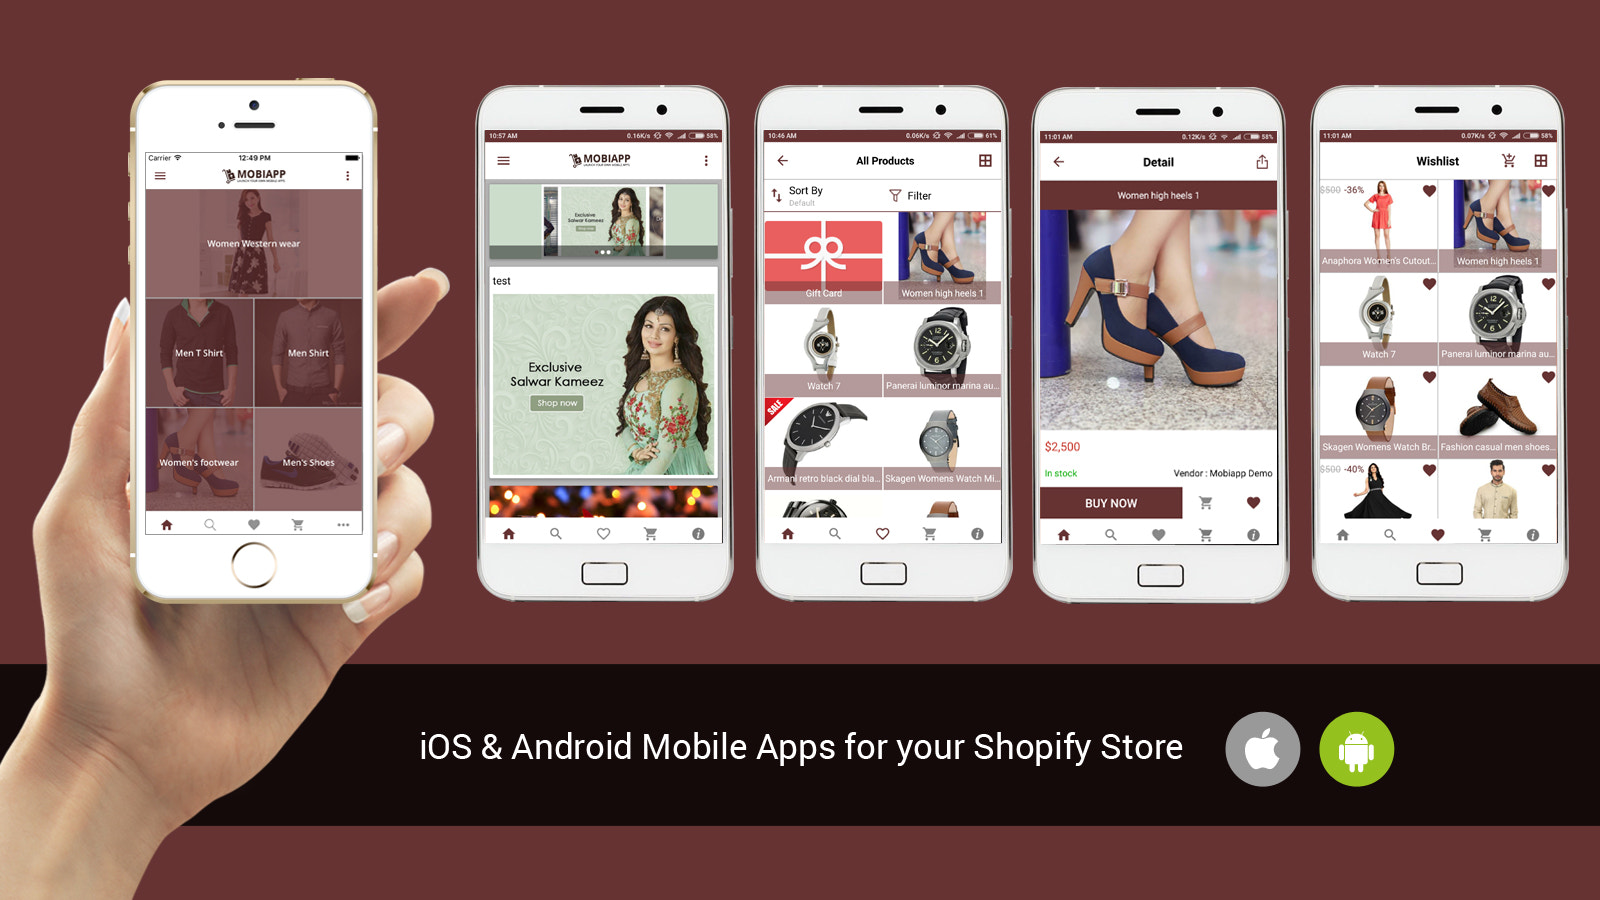 ios and android mobile application for your shopify store